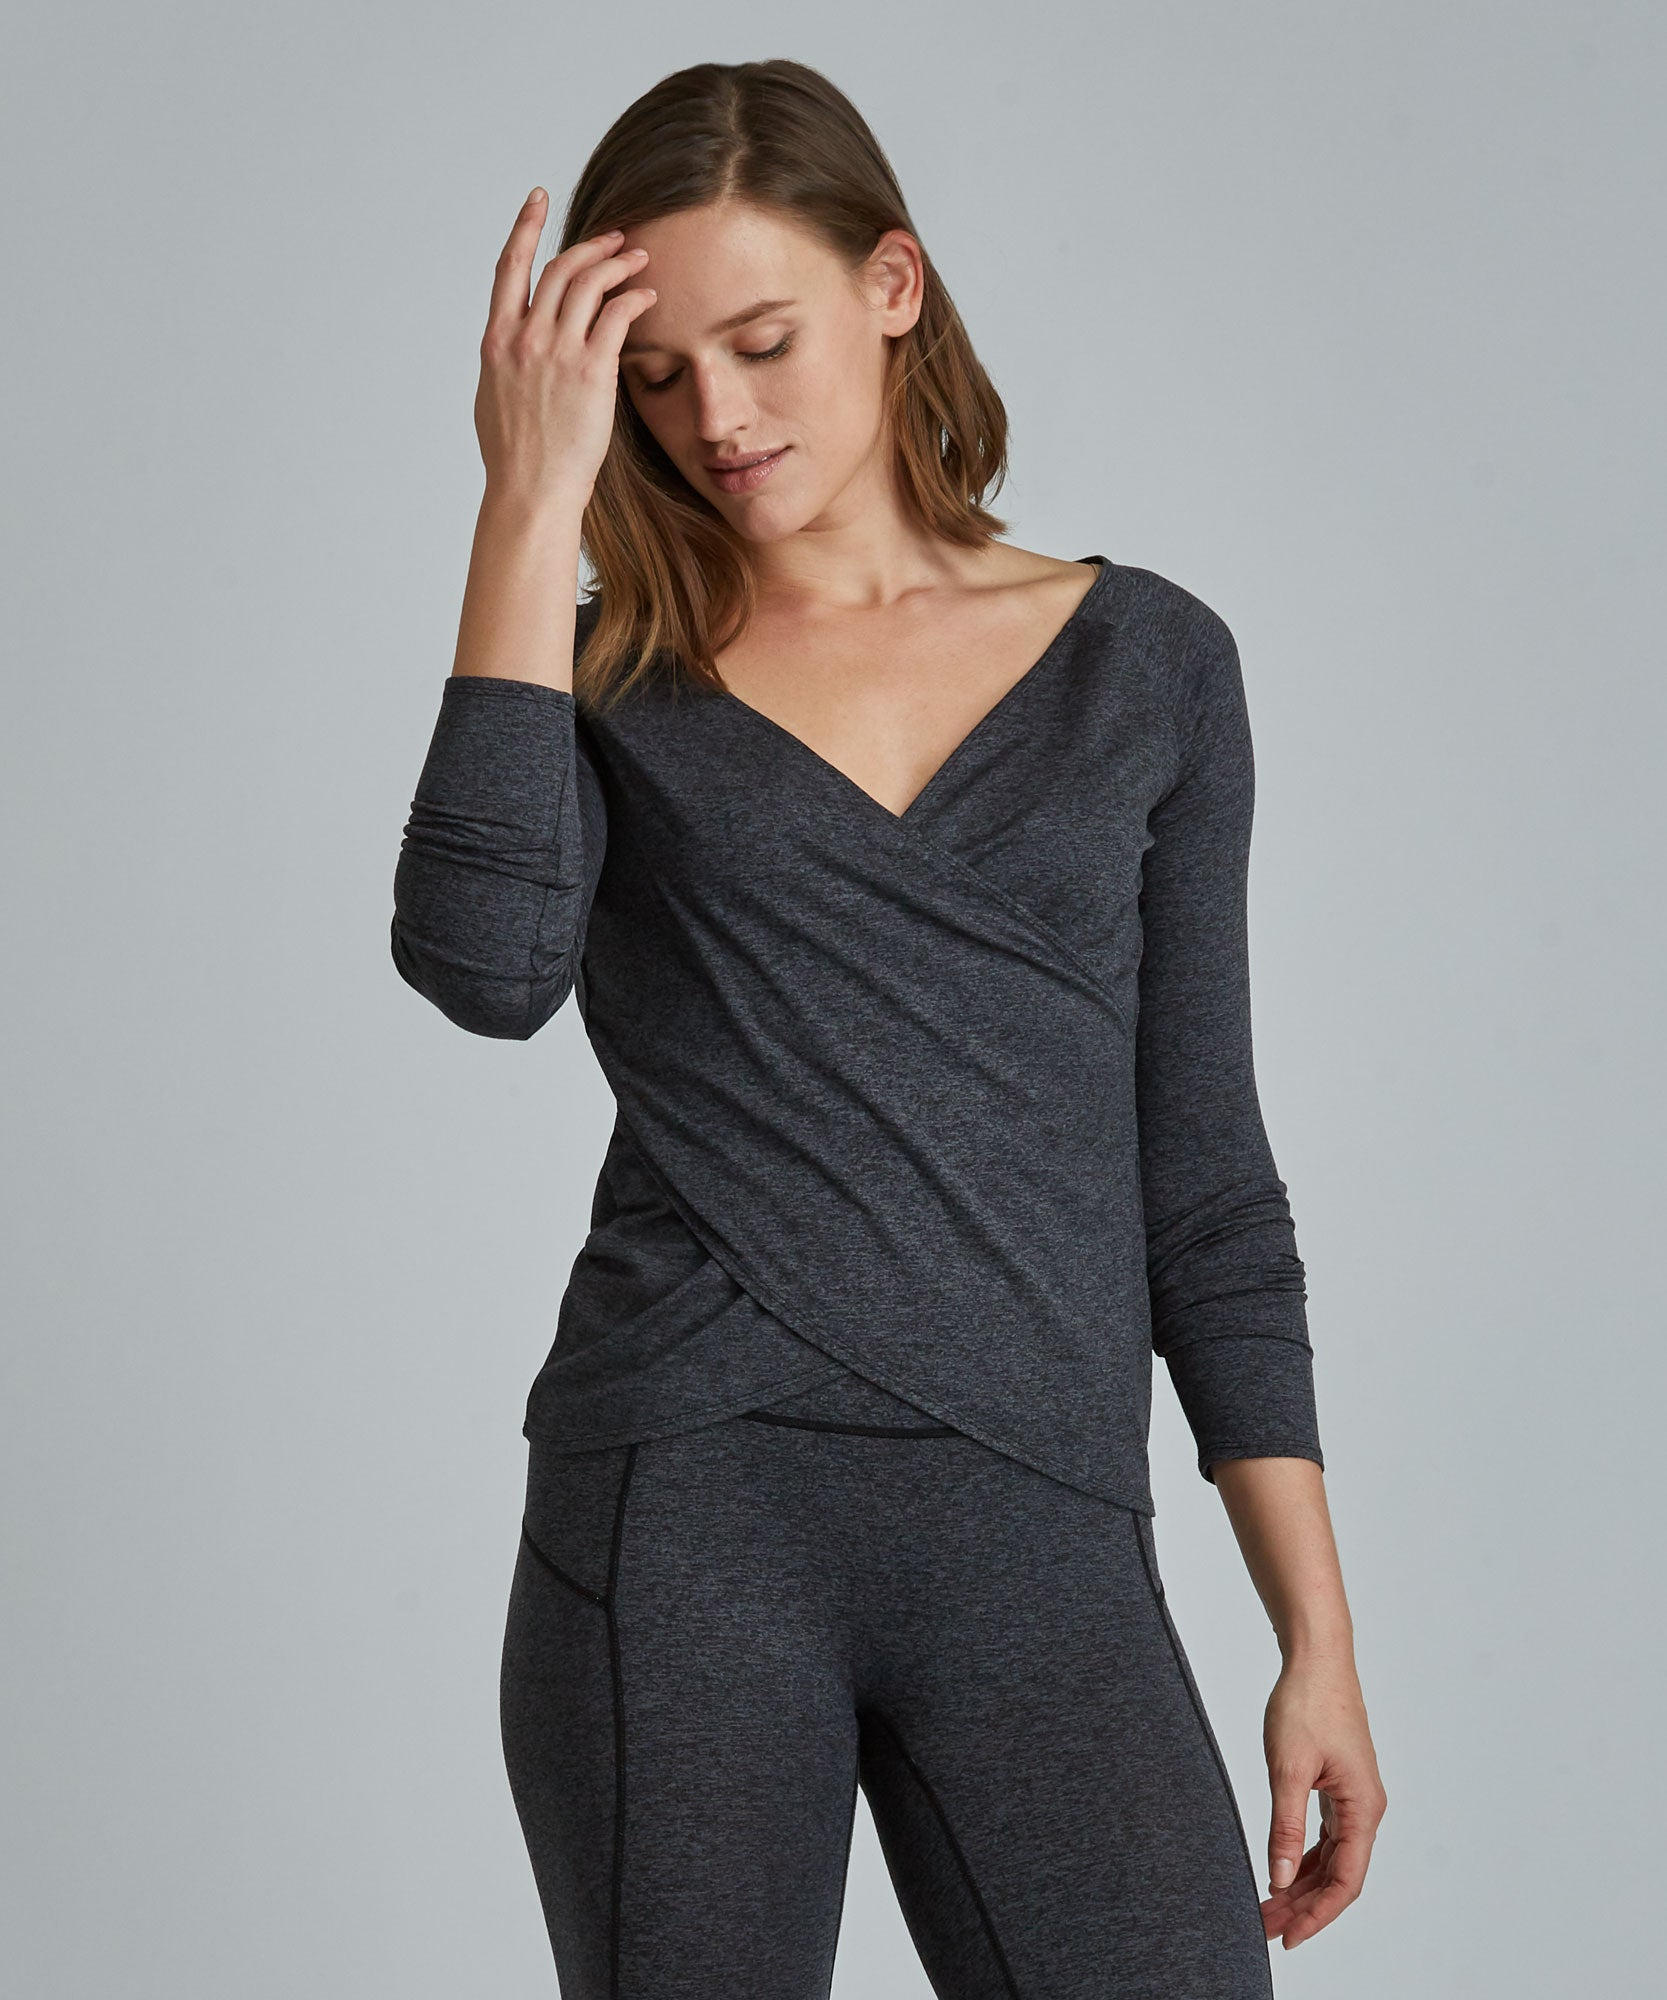 Catherine Wrap Top - Charcoal Heather